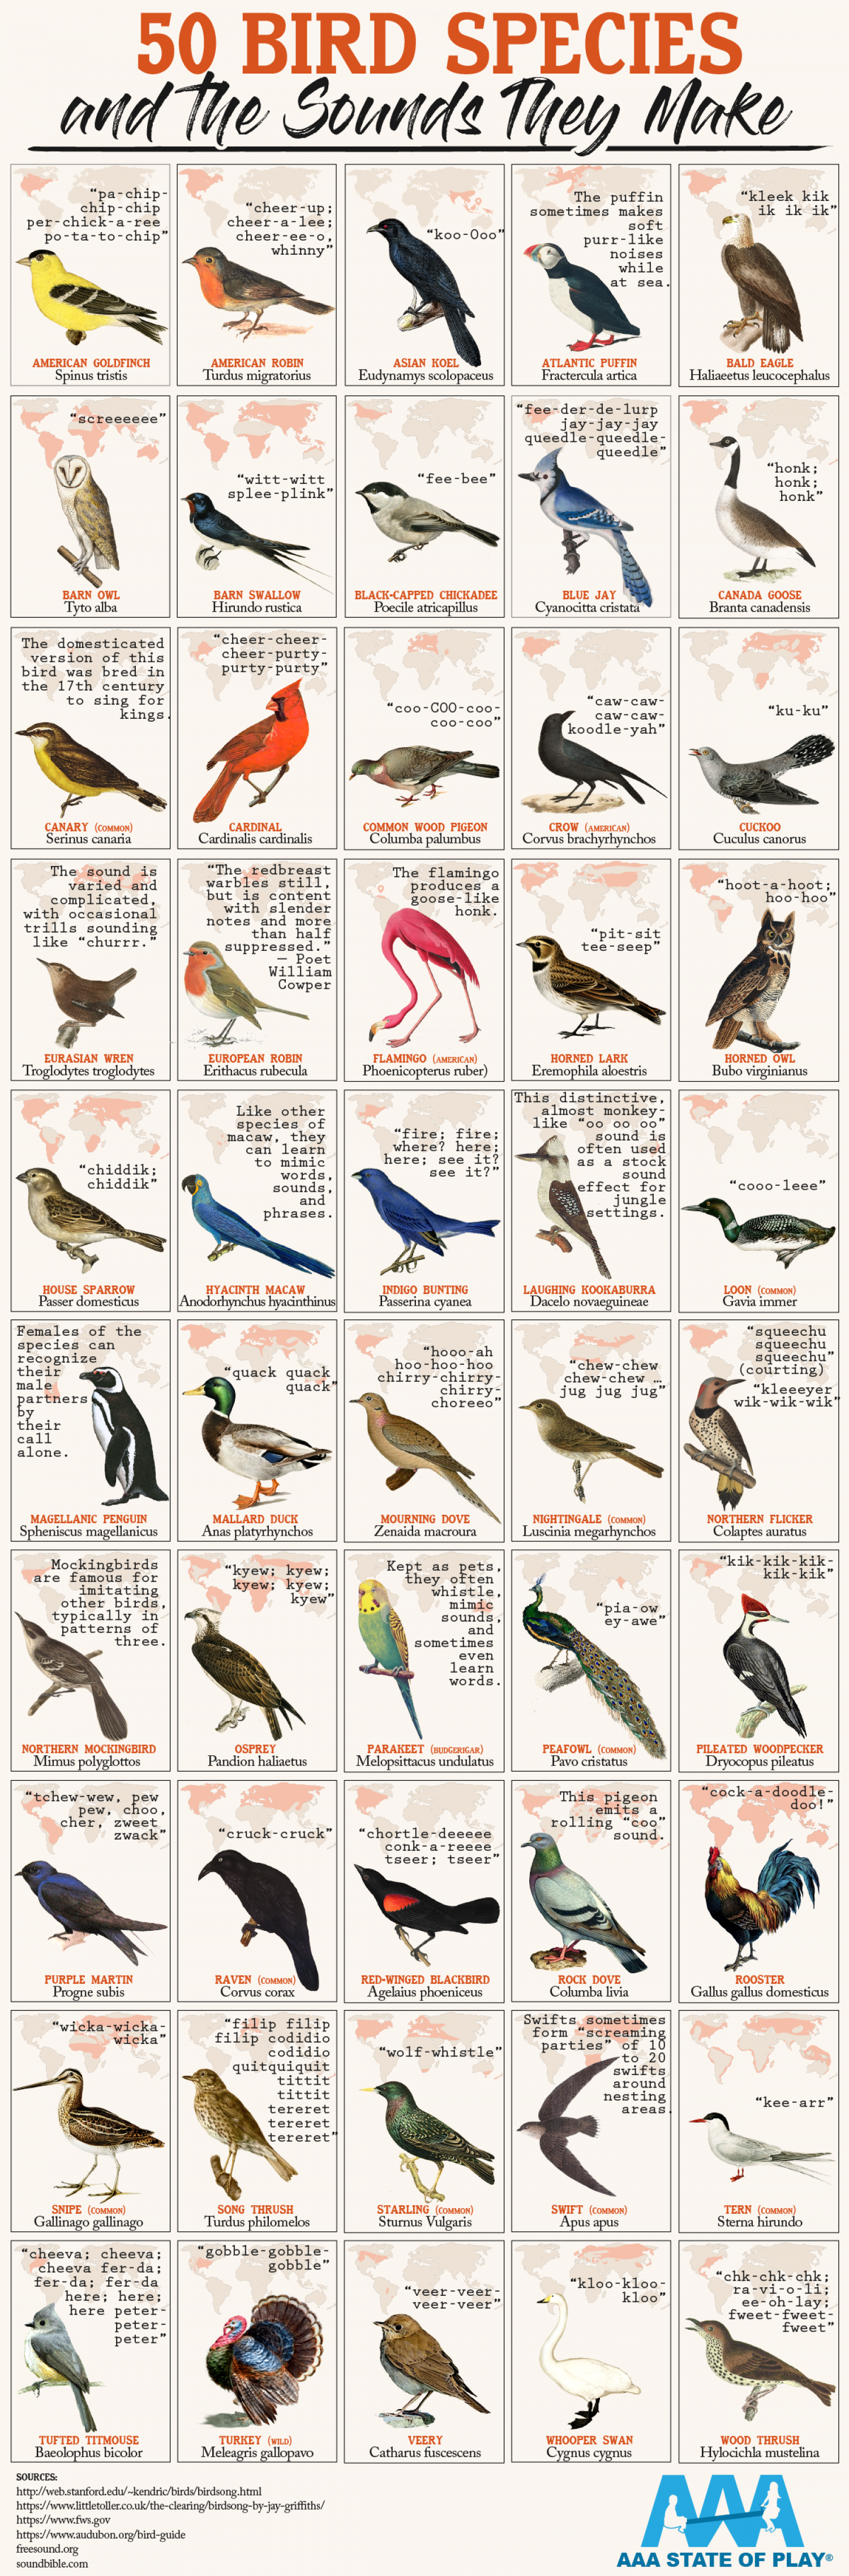 50 Bird Species and the Sounds They Make  Infographic